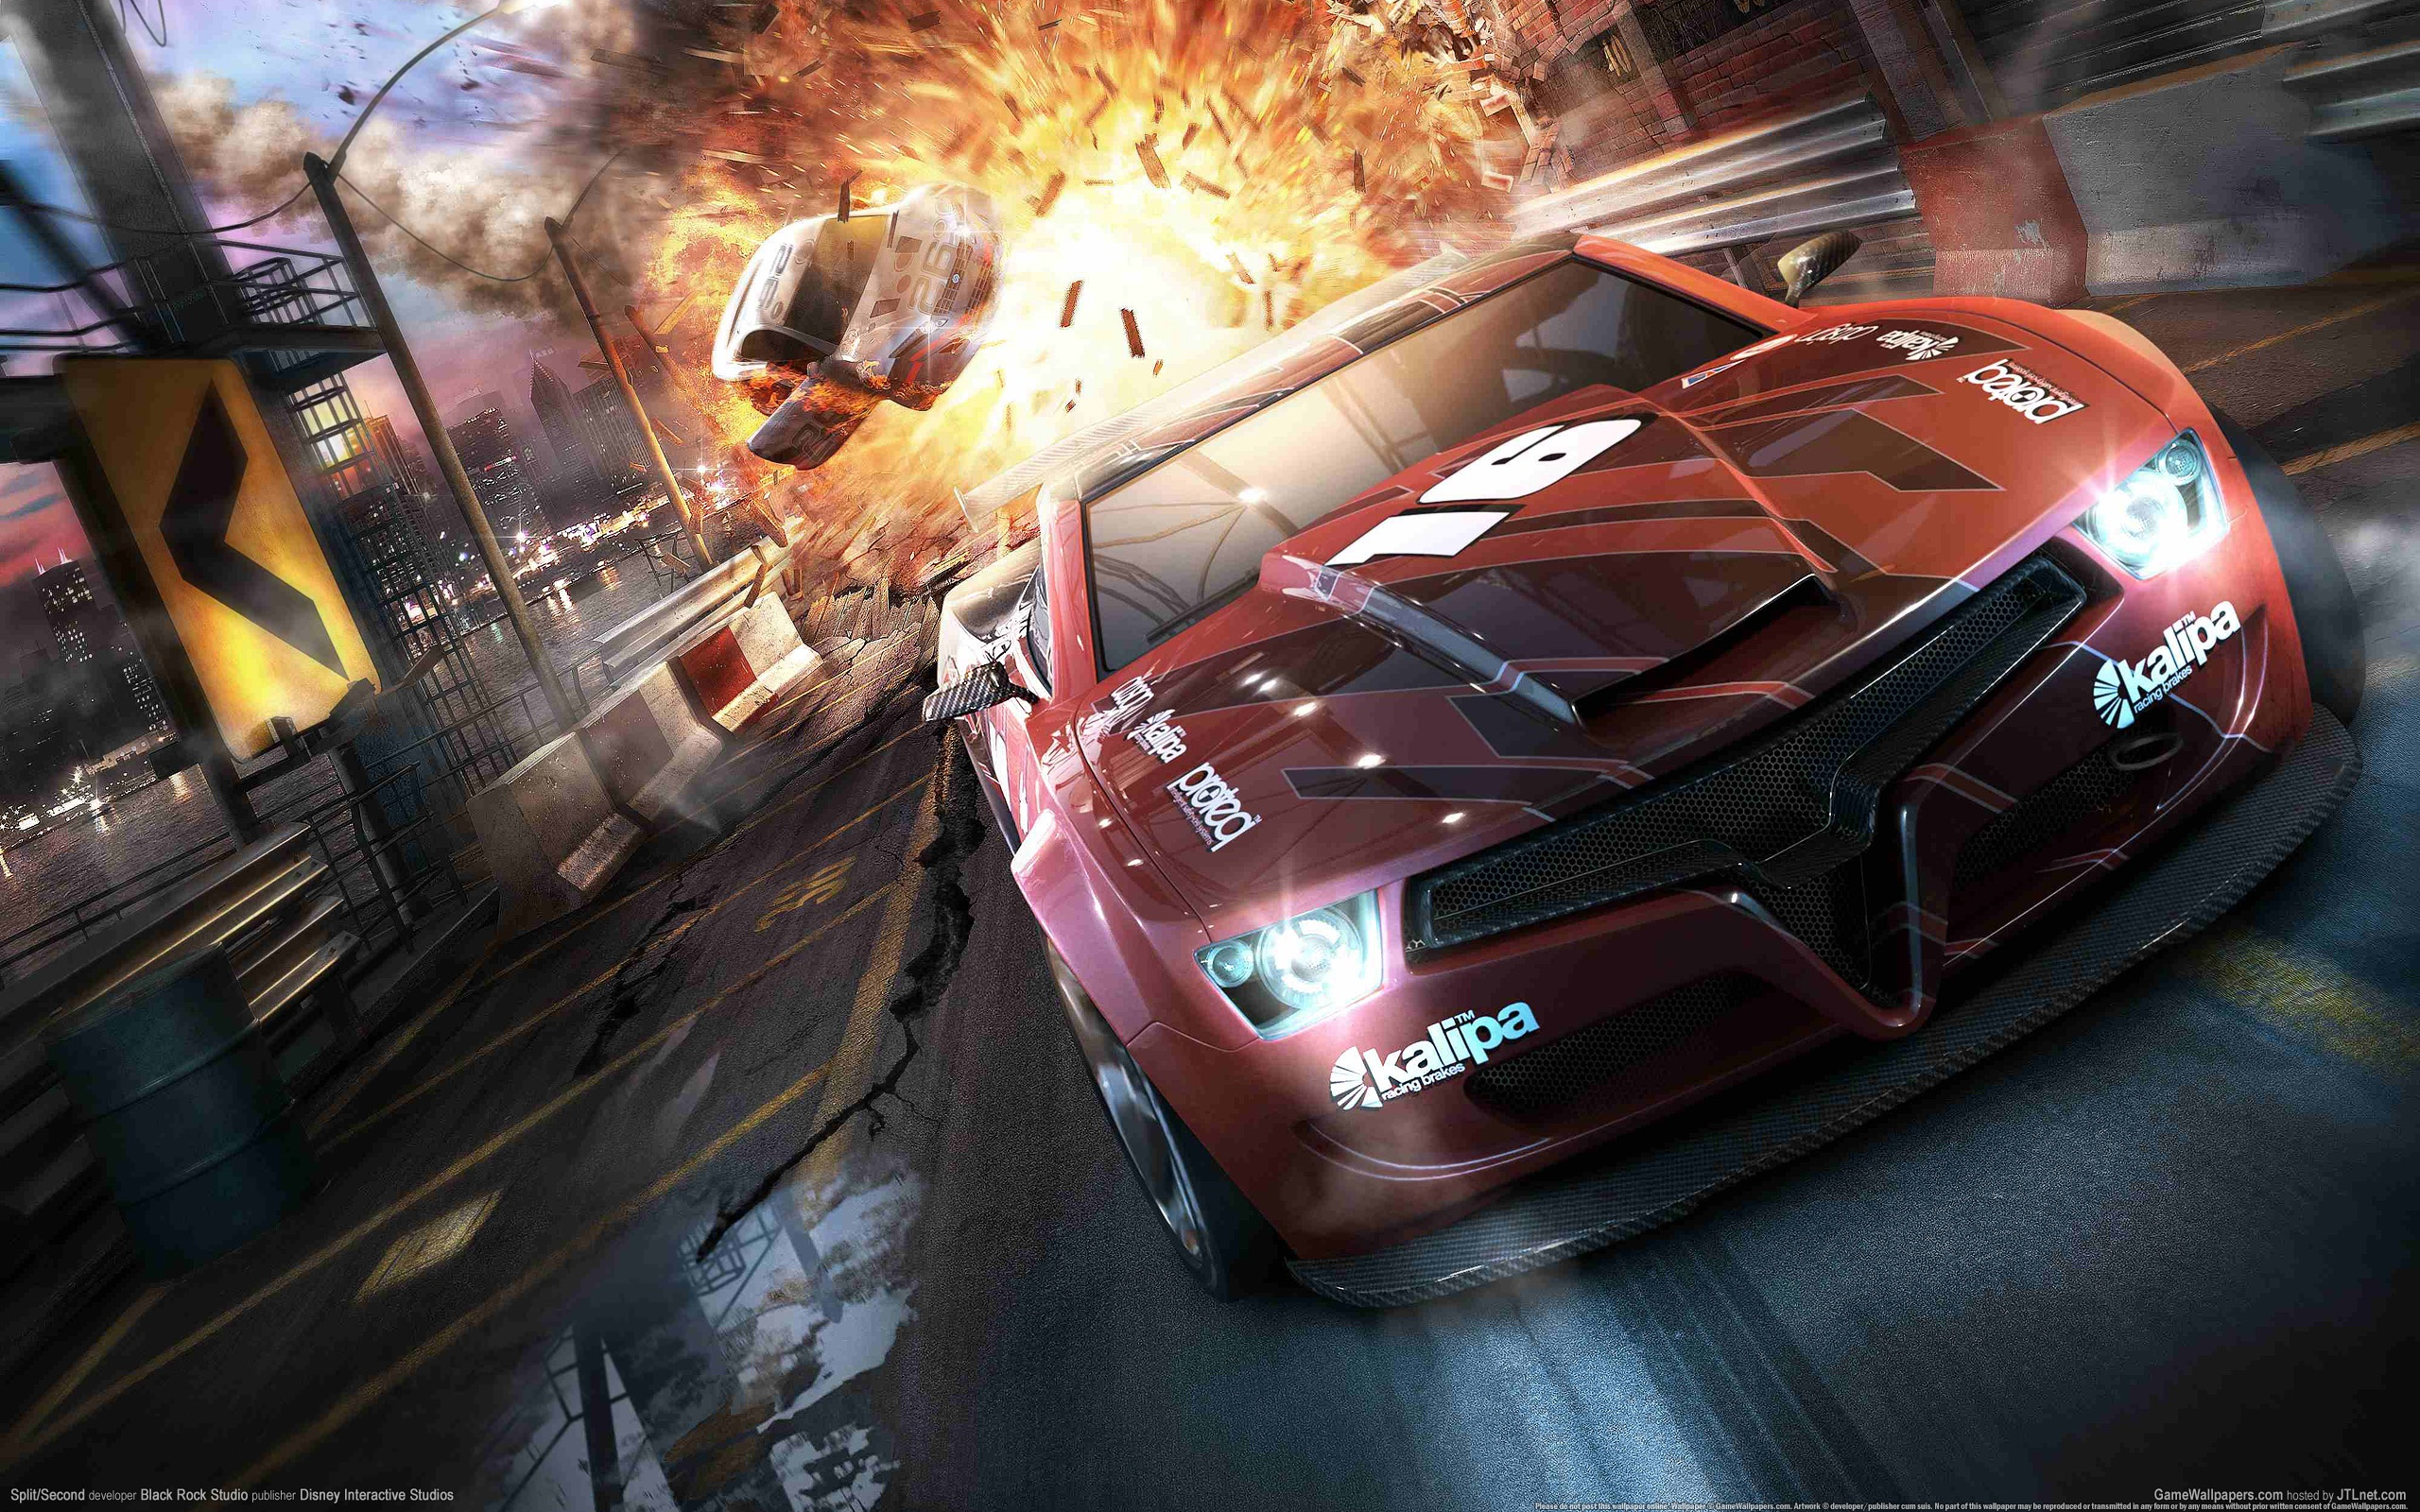 pc wallpapers of cars free download #7